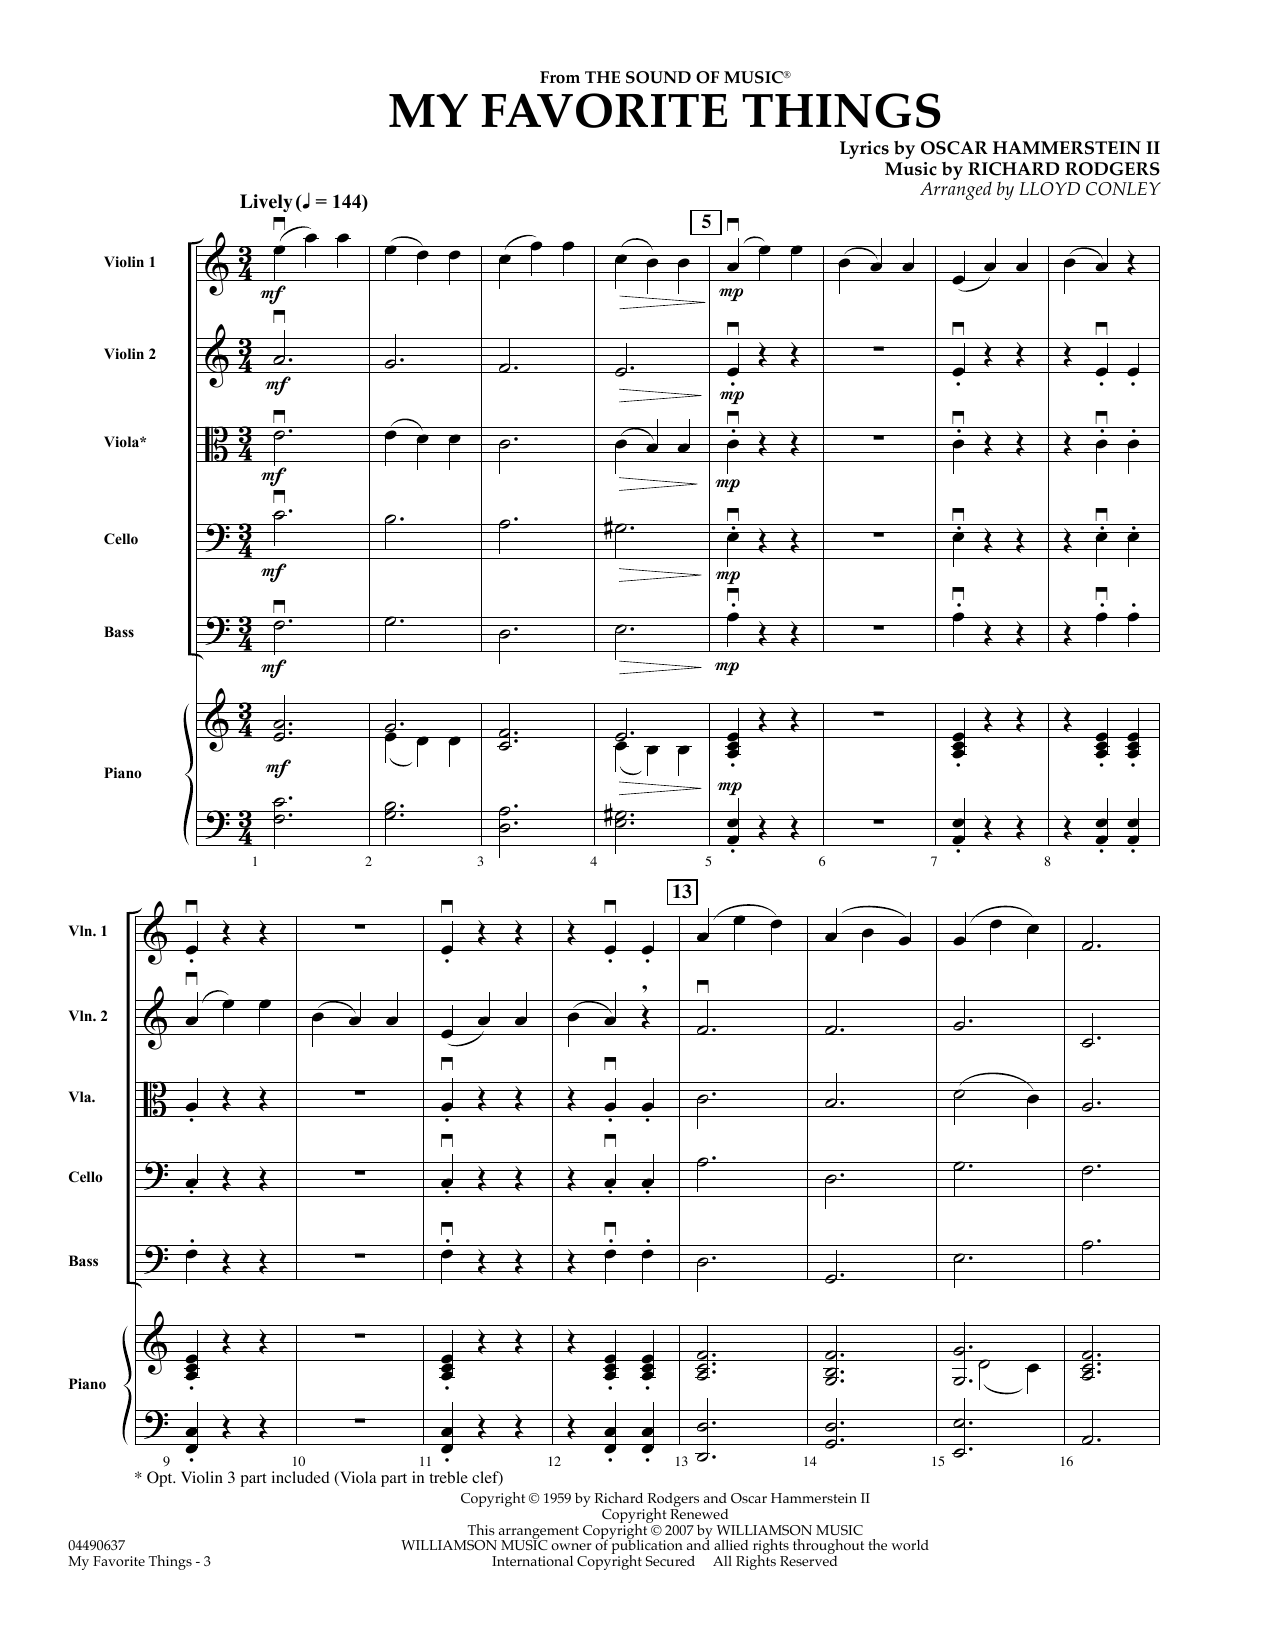 My Favorite Things (COMPLETE) sheet music for orchestra by Richard Rodgers, Chicago, Lloyd Conley, Lorrie Morgan and Oscar II Hammerstein. Score Image Preview.